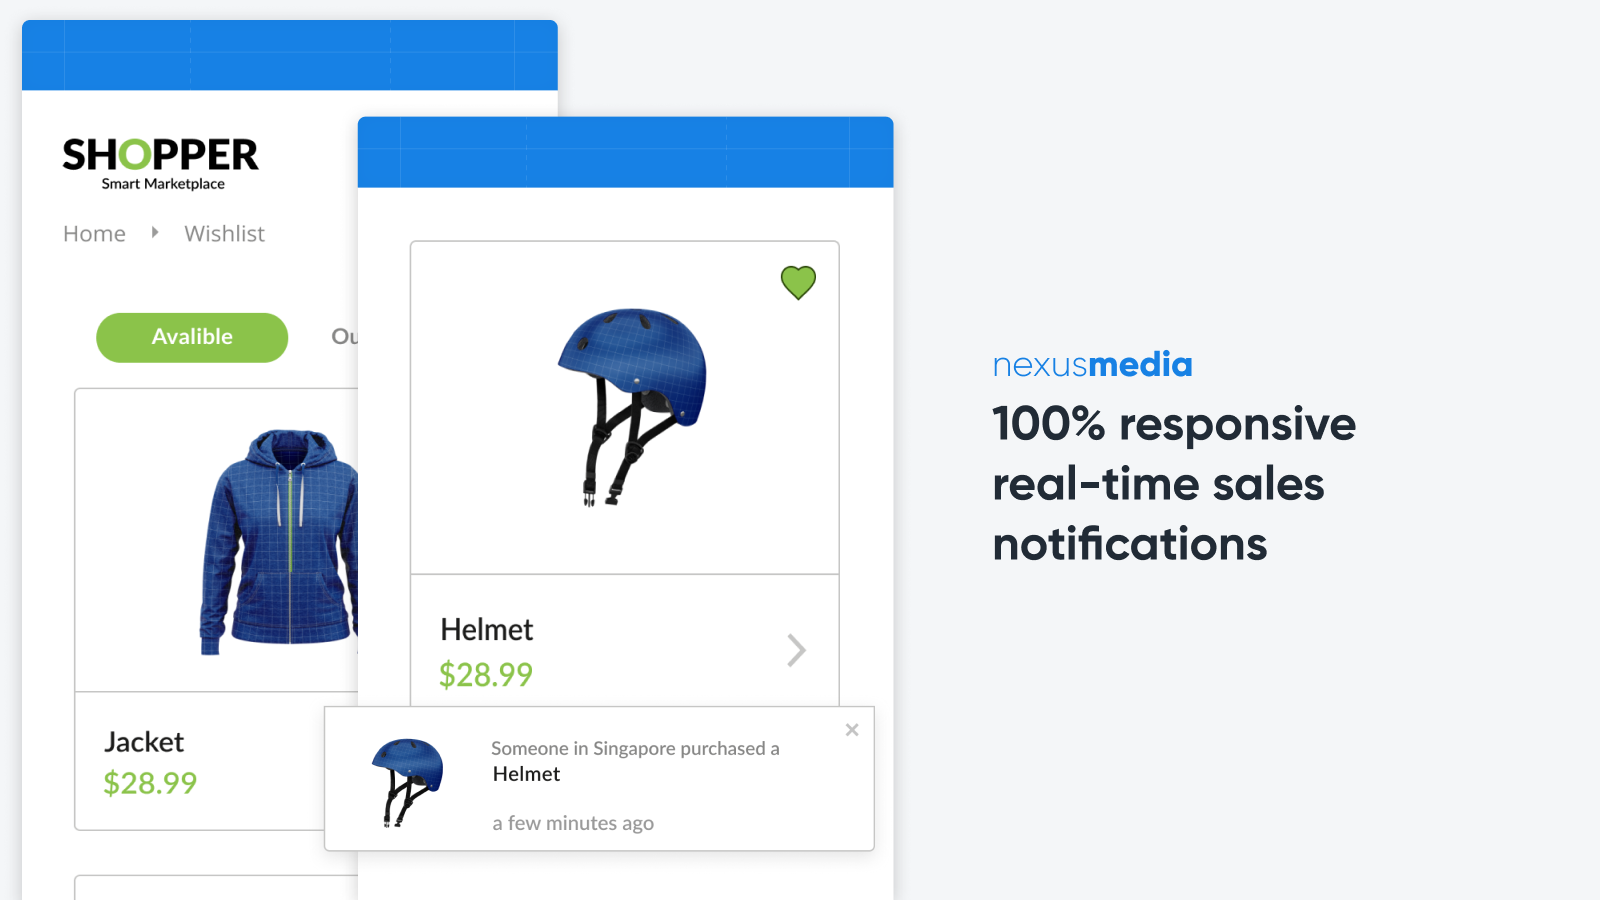 100% responsive real-time sales notifications